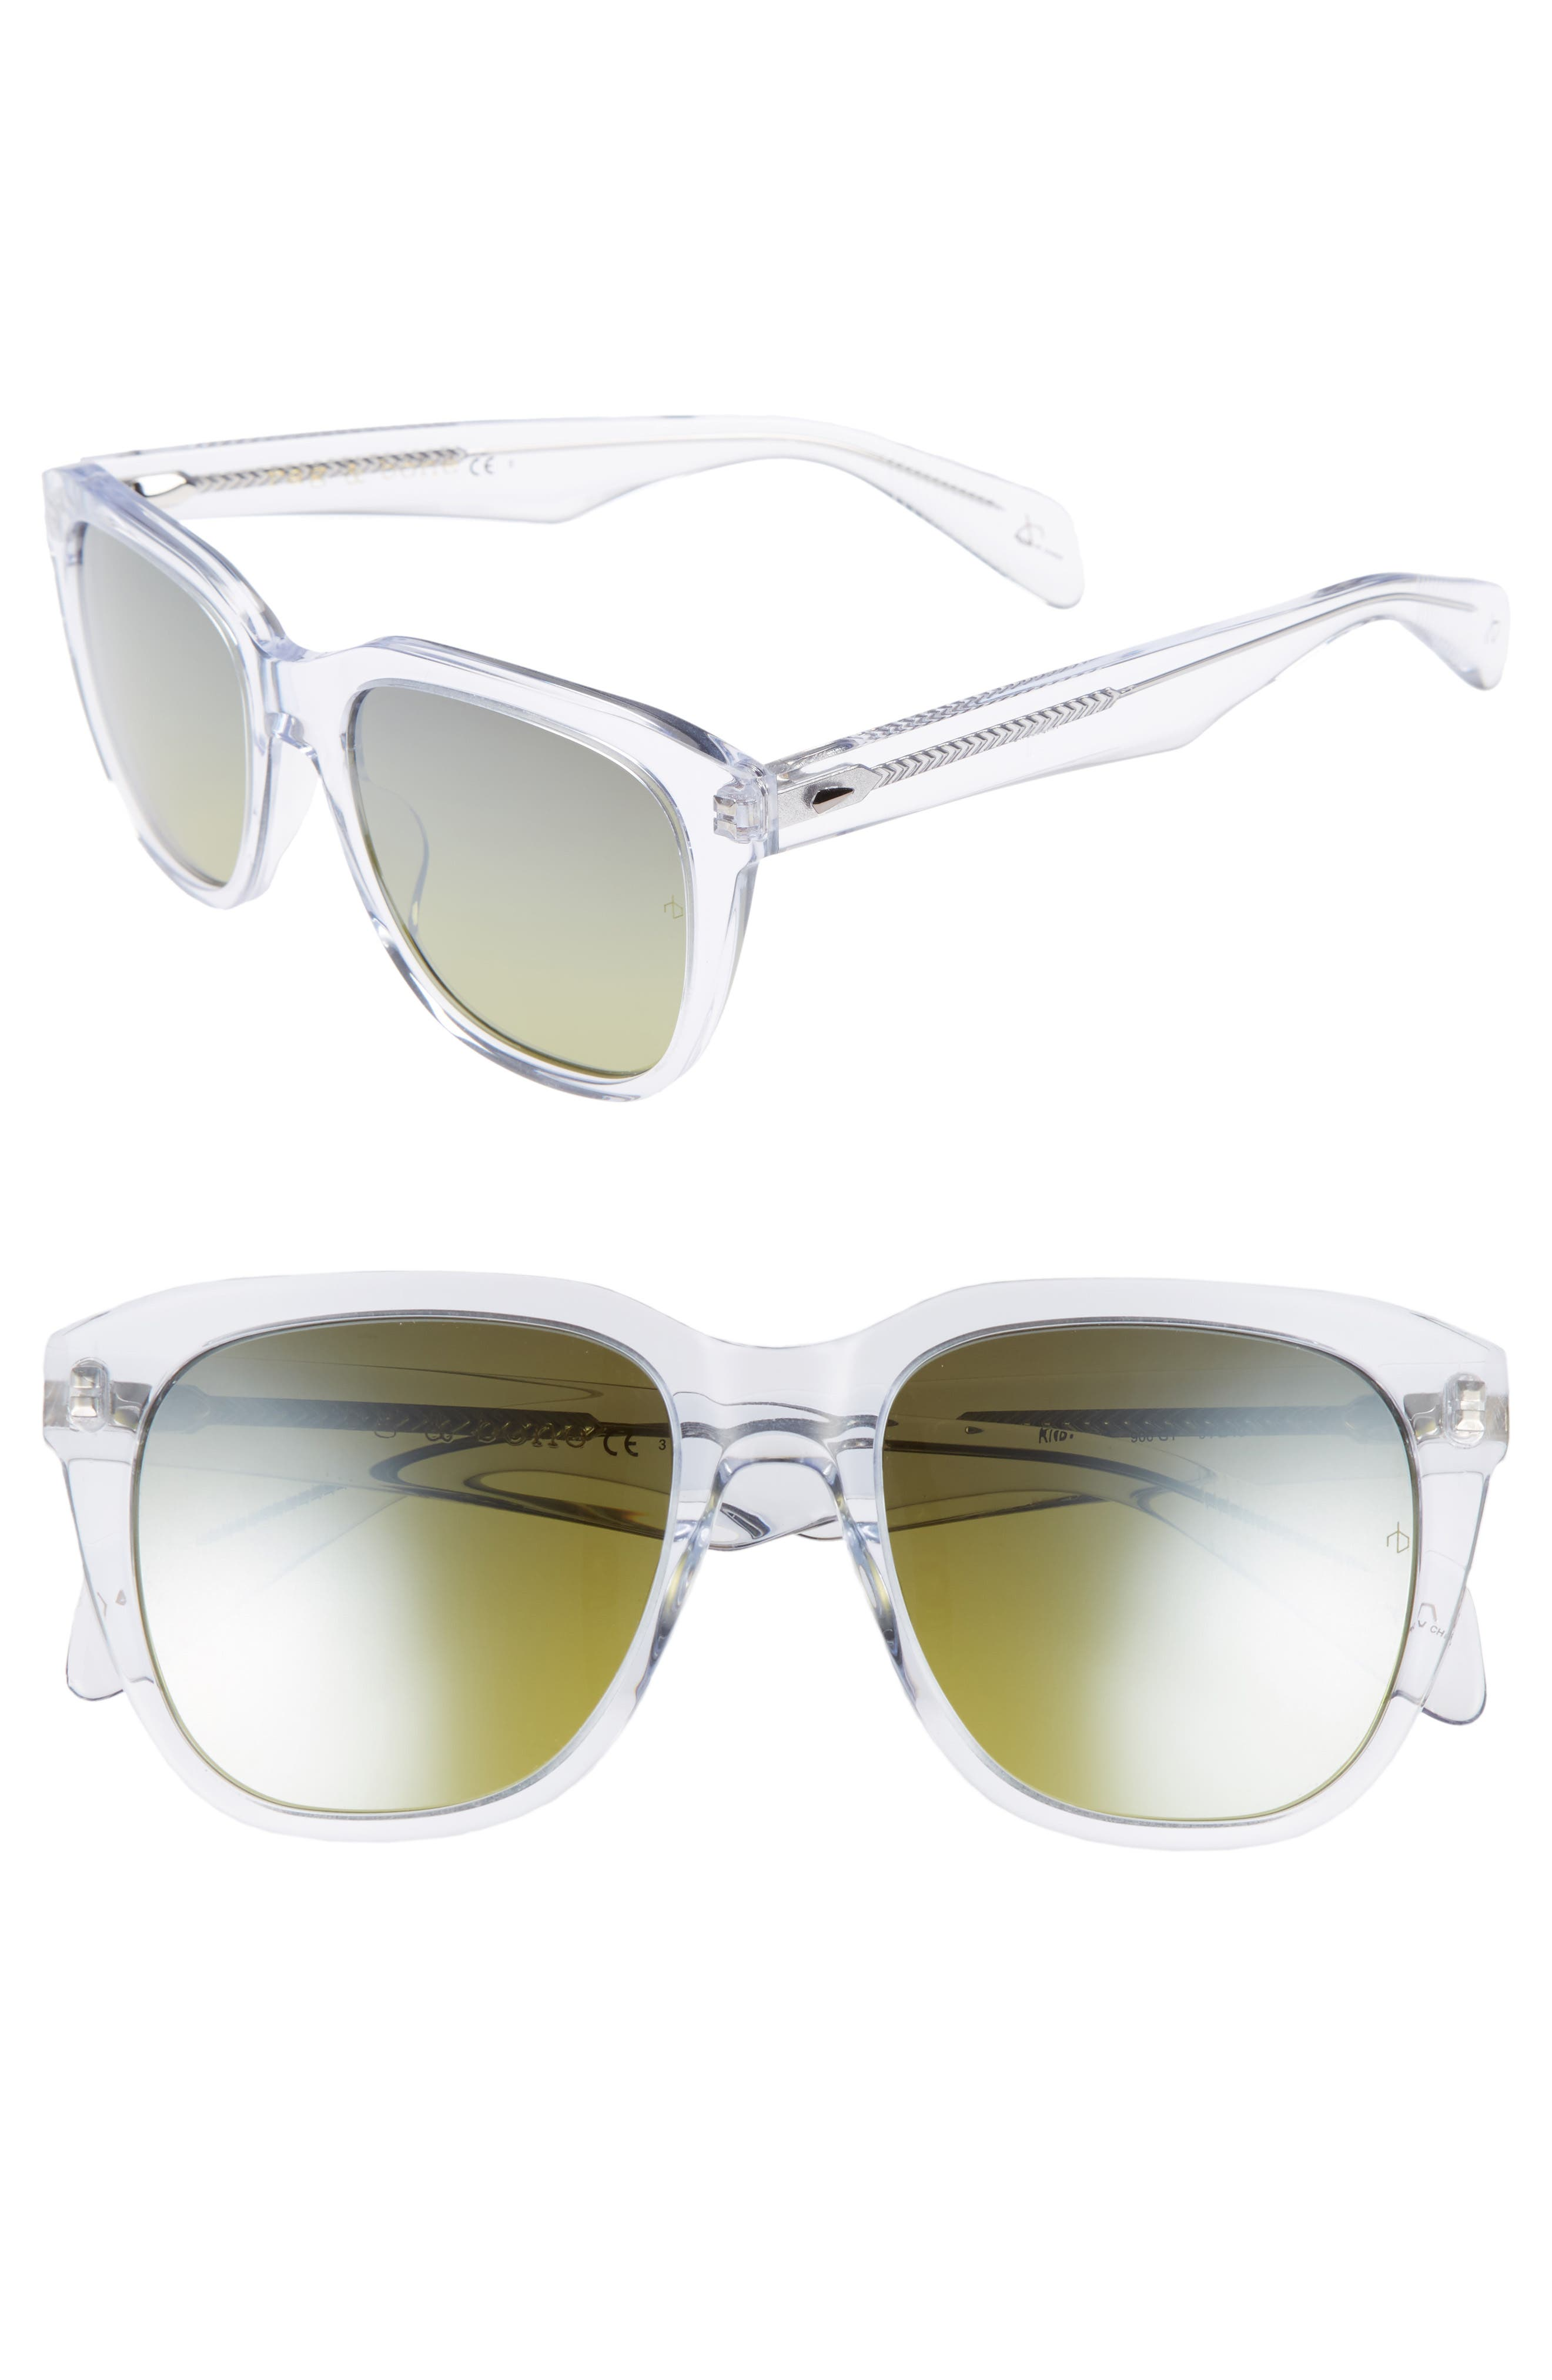 54mm Mirrored Sunglasses,                             Main thumbnail 1, color,                             CRYSTAL